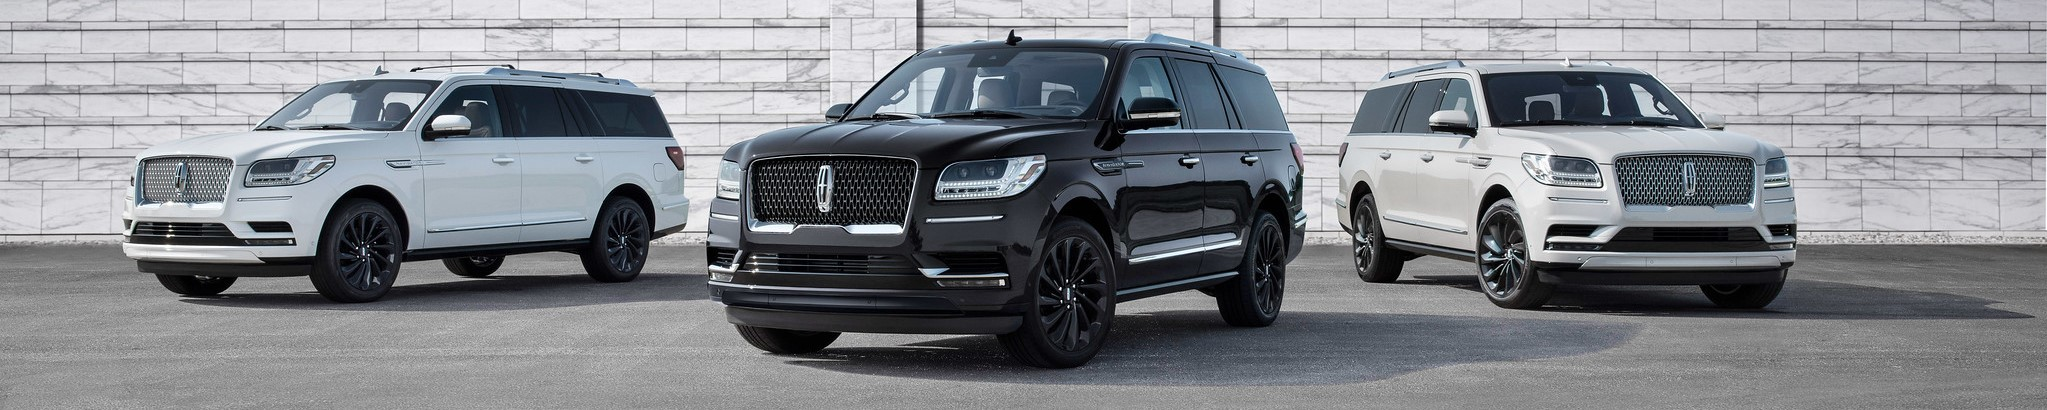 2020 Lincoln Navigator - Toronto, ON